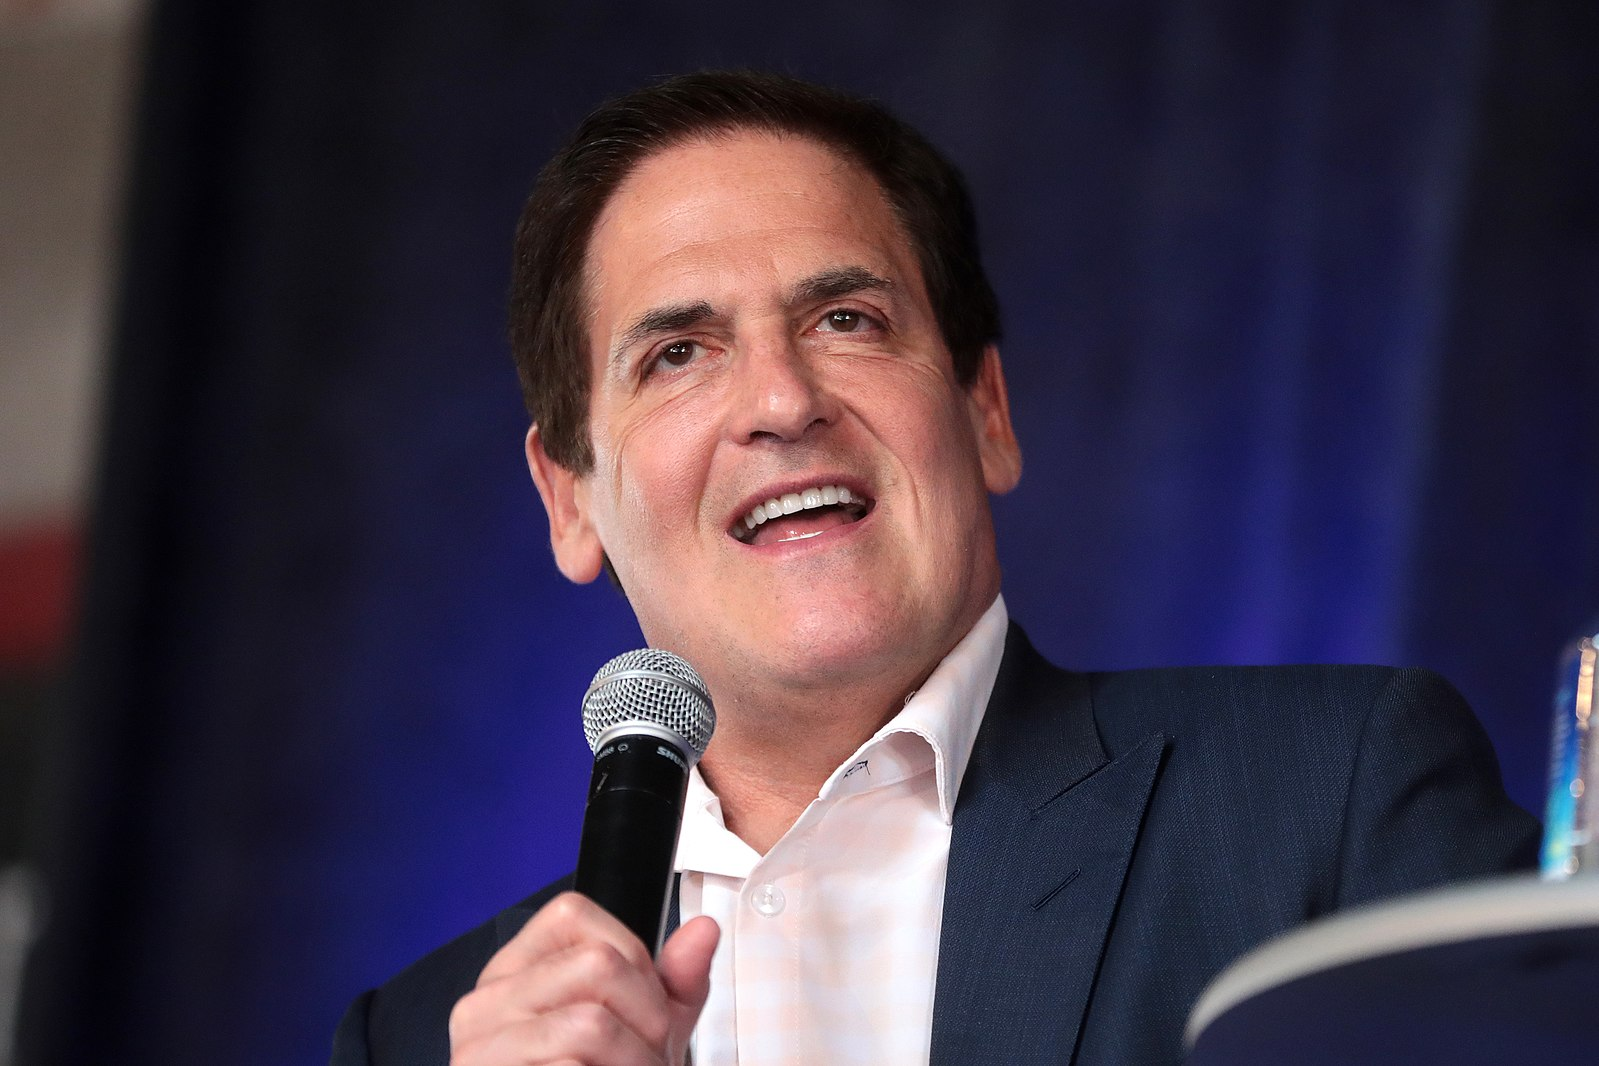 Mark Cuban has shared his cryptocurrency portfolio with a number of news outlets.